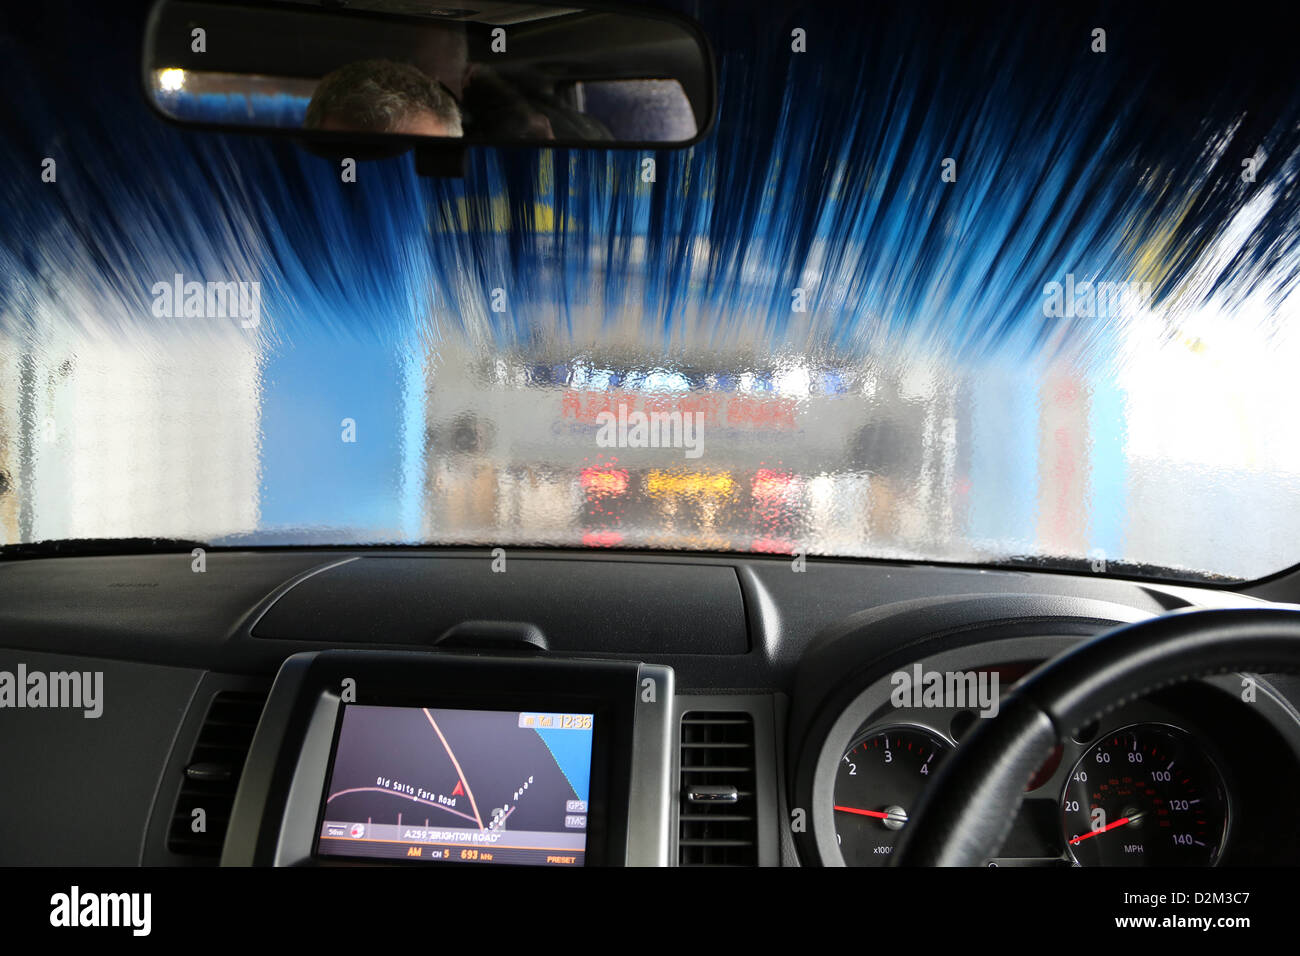 Nissan X Trail going through a car wash in Shoreham West Sussex - Stock Image